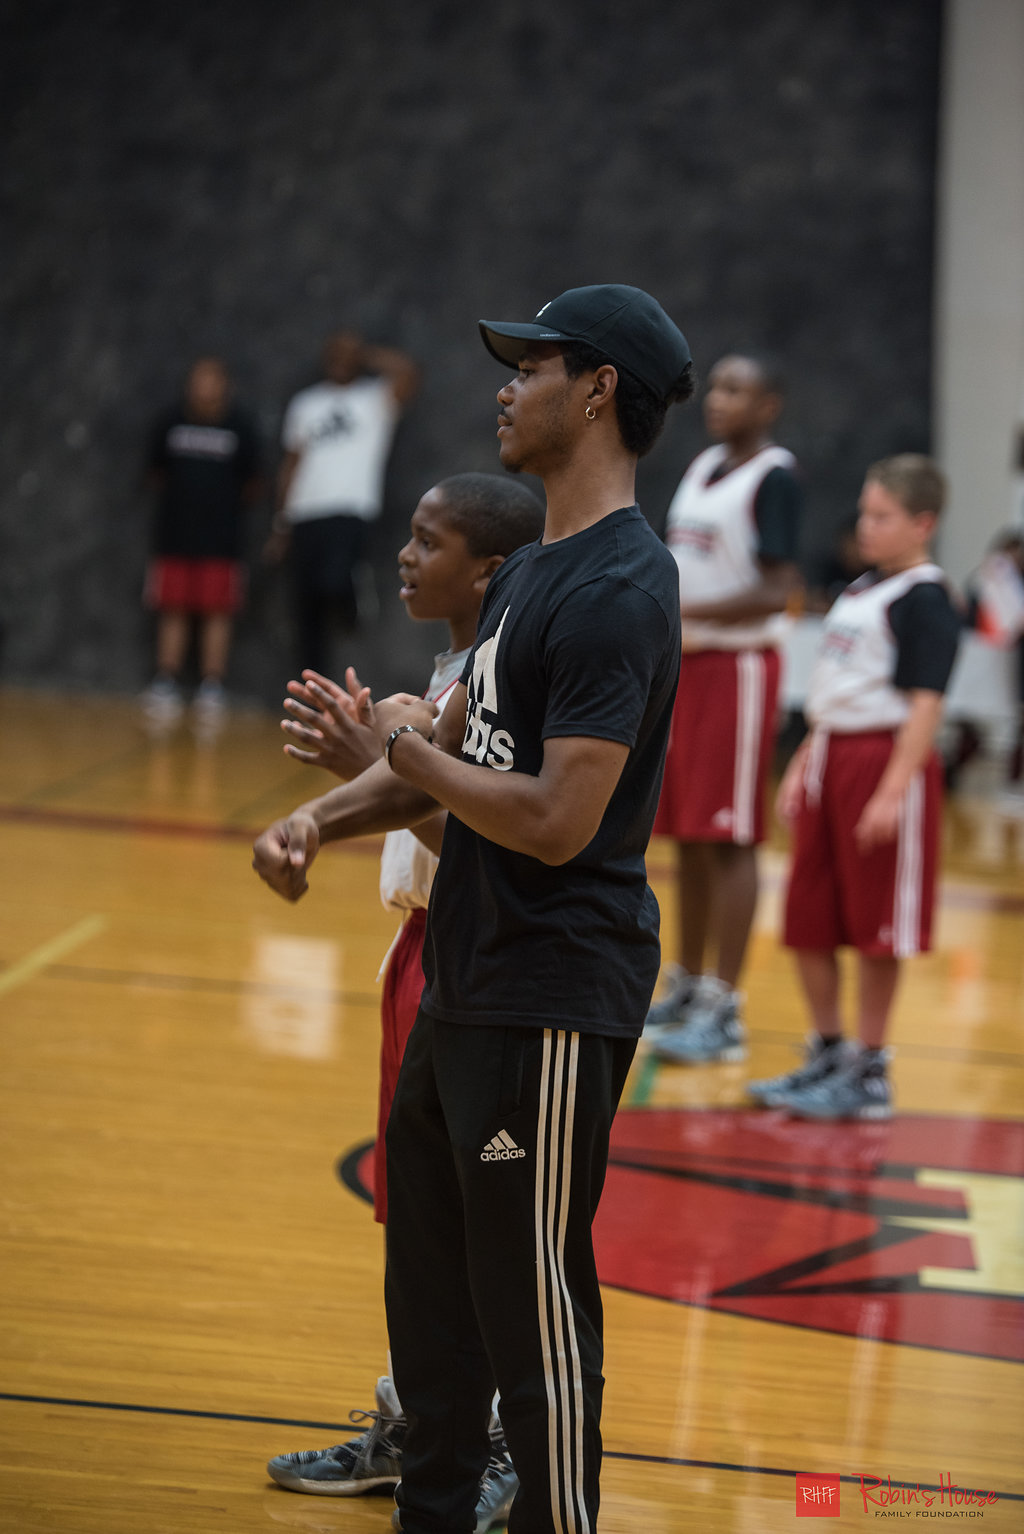 rhff_basketball_clinic_sunday-45.jpg